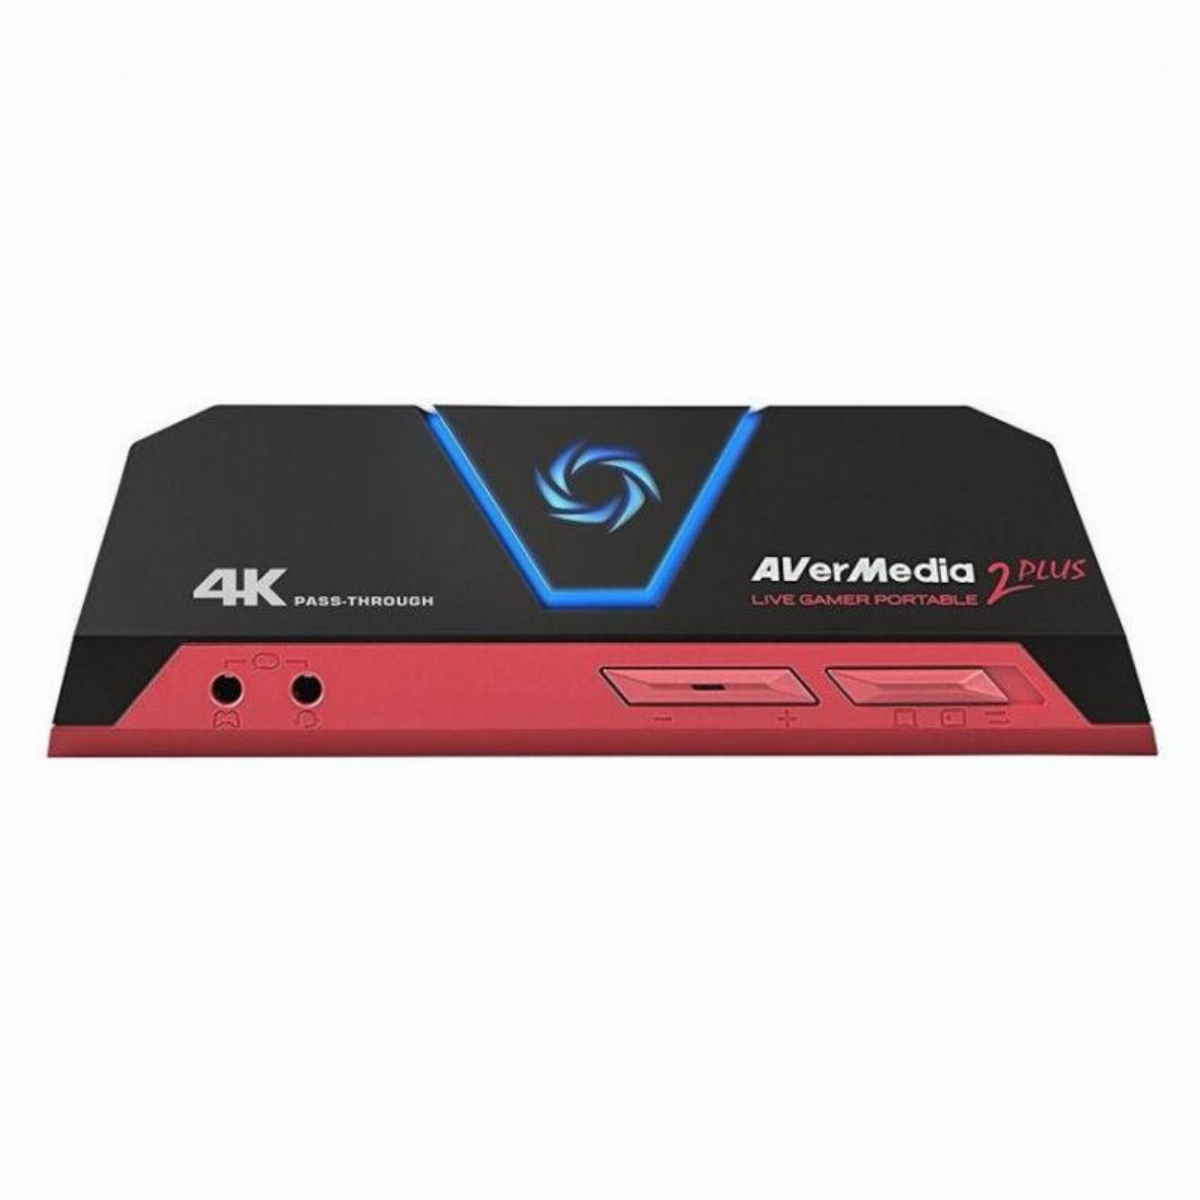 Външен кепчър AVerMedia LIVE Gamer Portable 2 Plus, USB